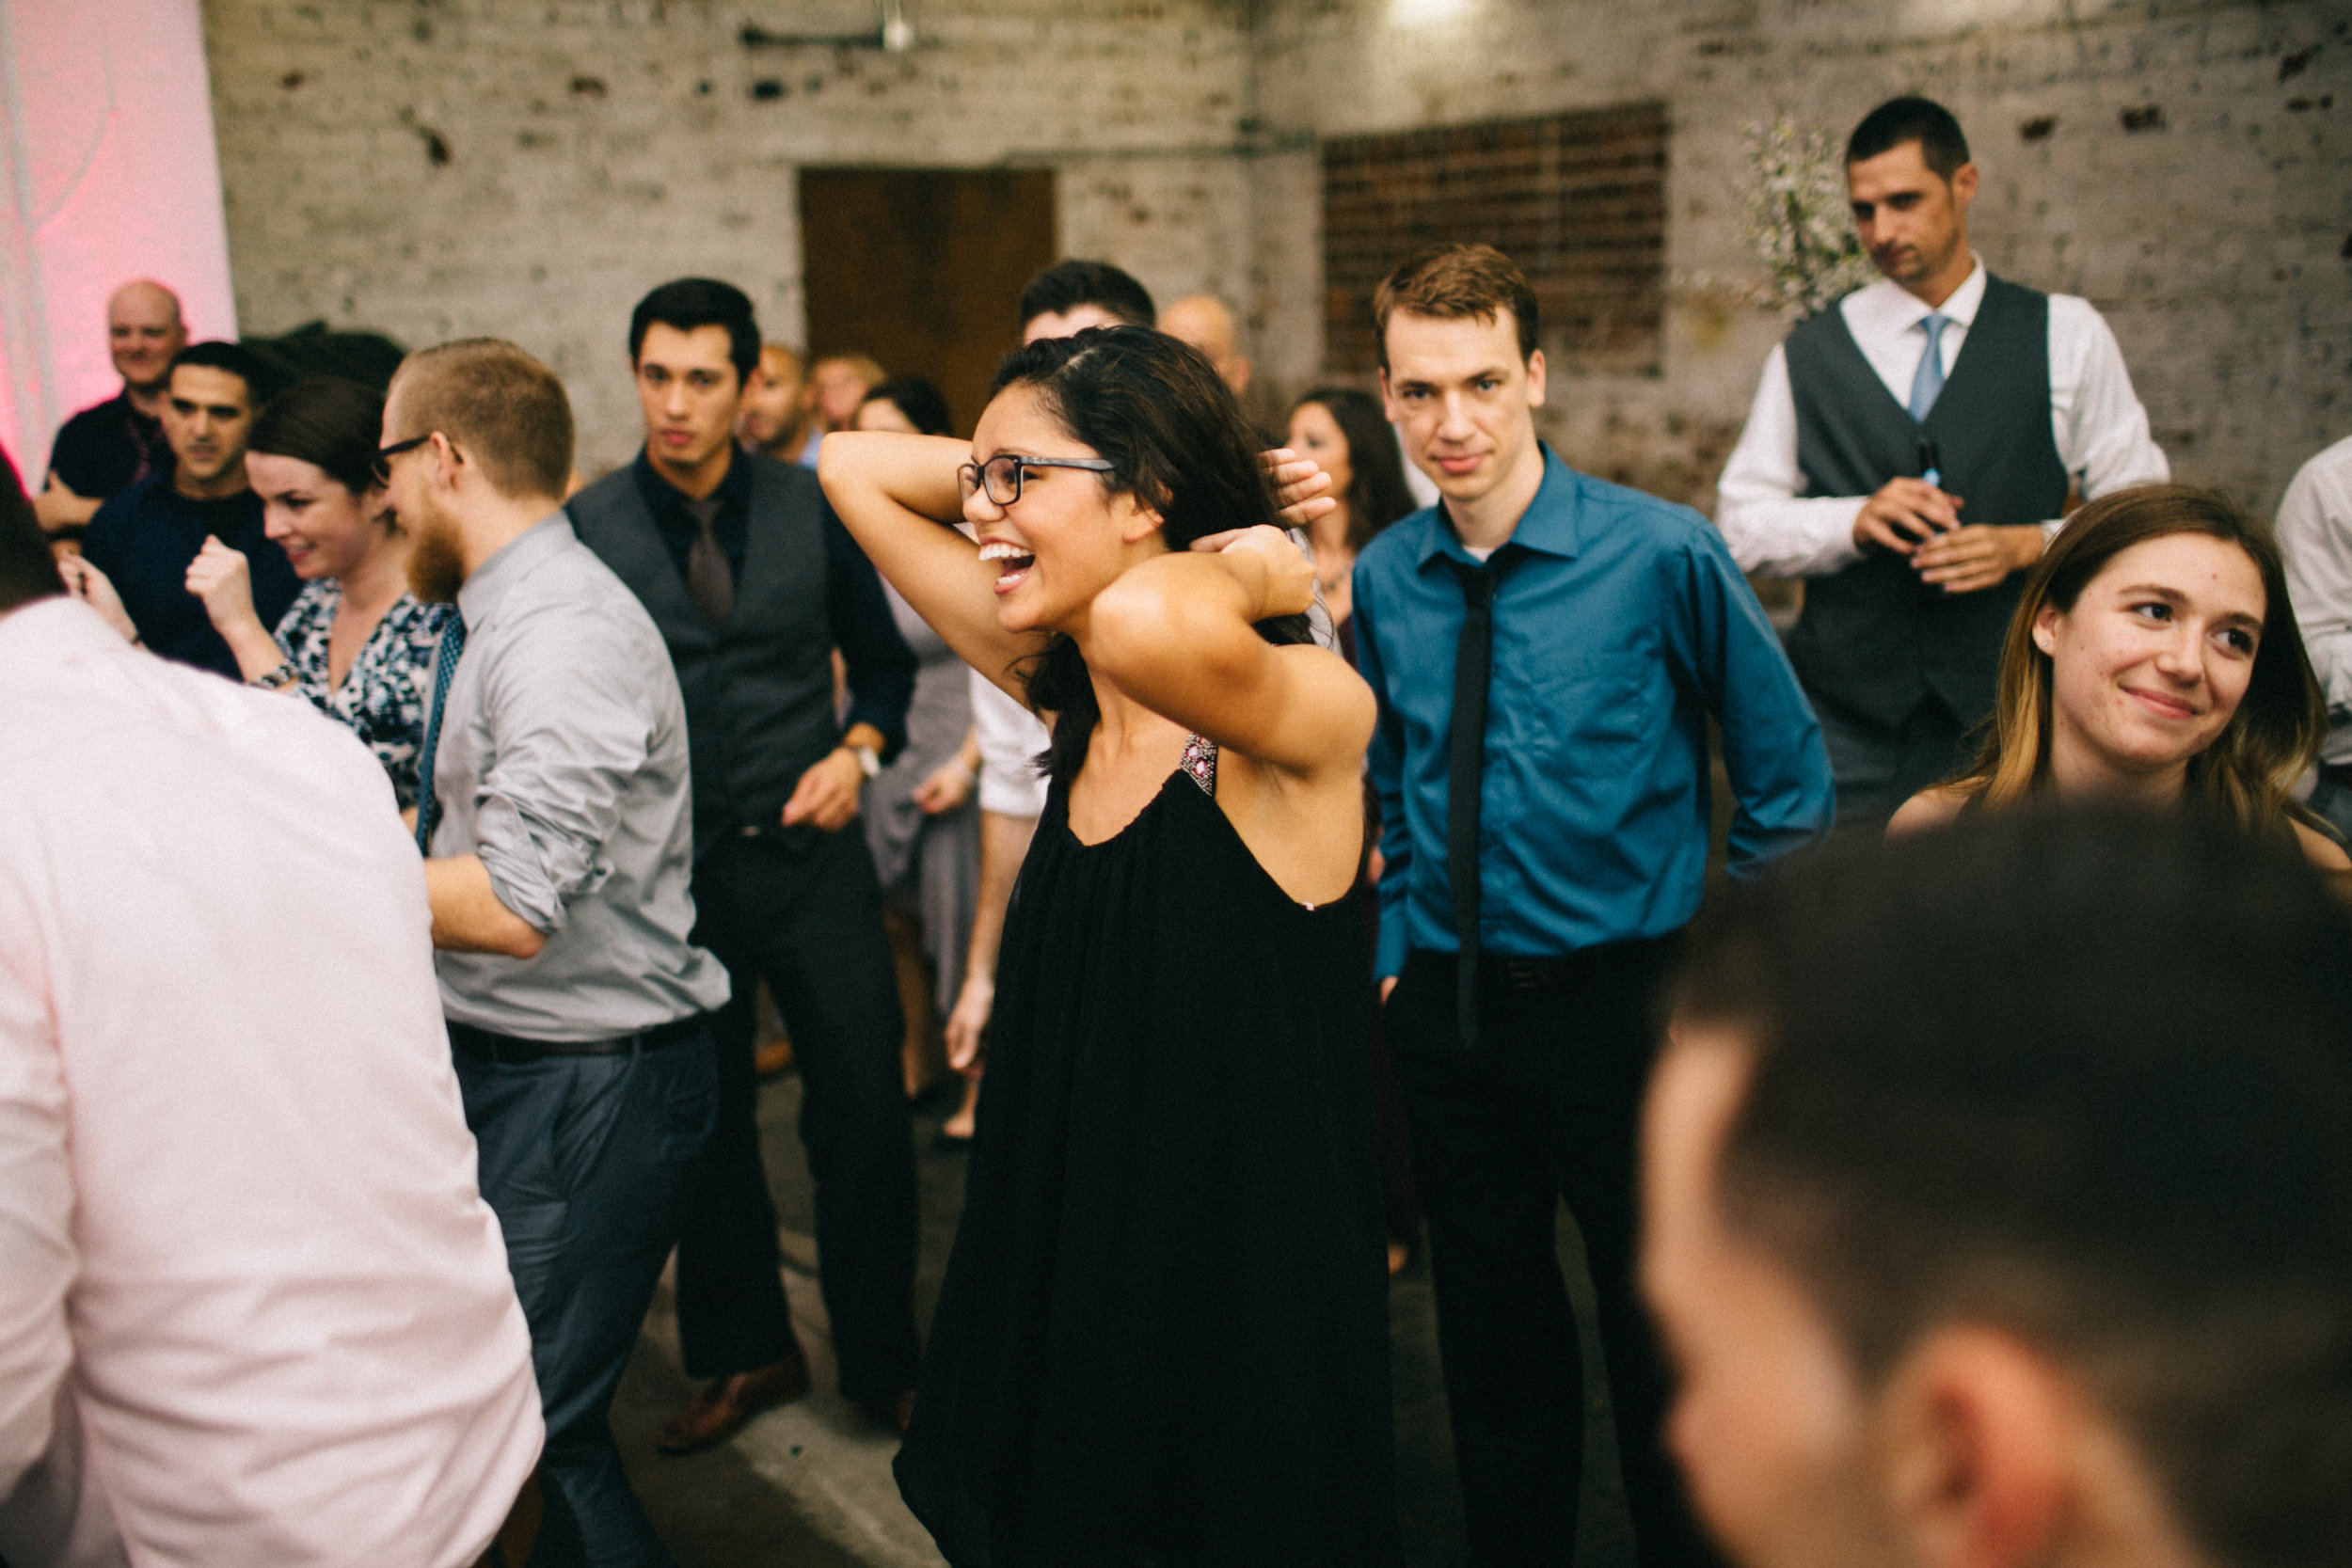 Tampa Industrial wedding at the Rialto Theater_198.jpg